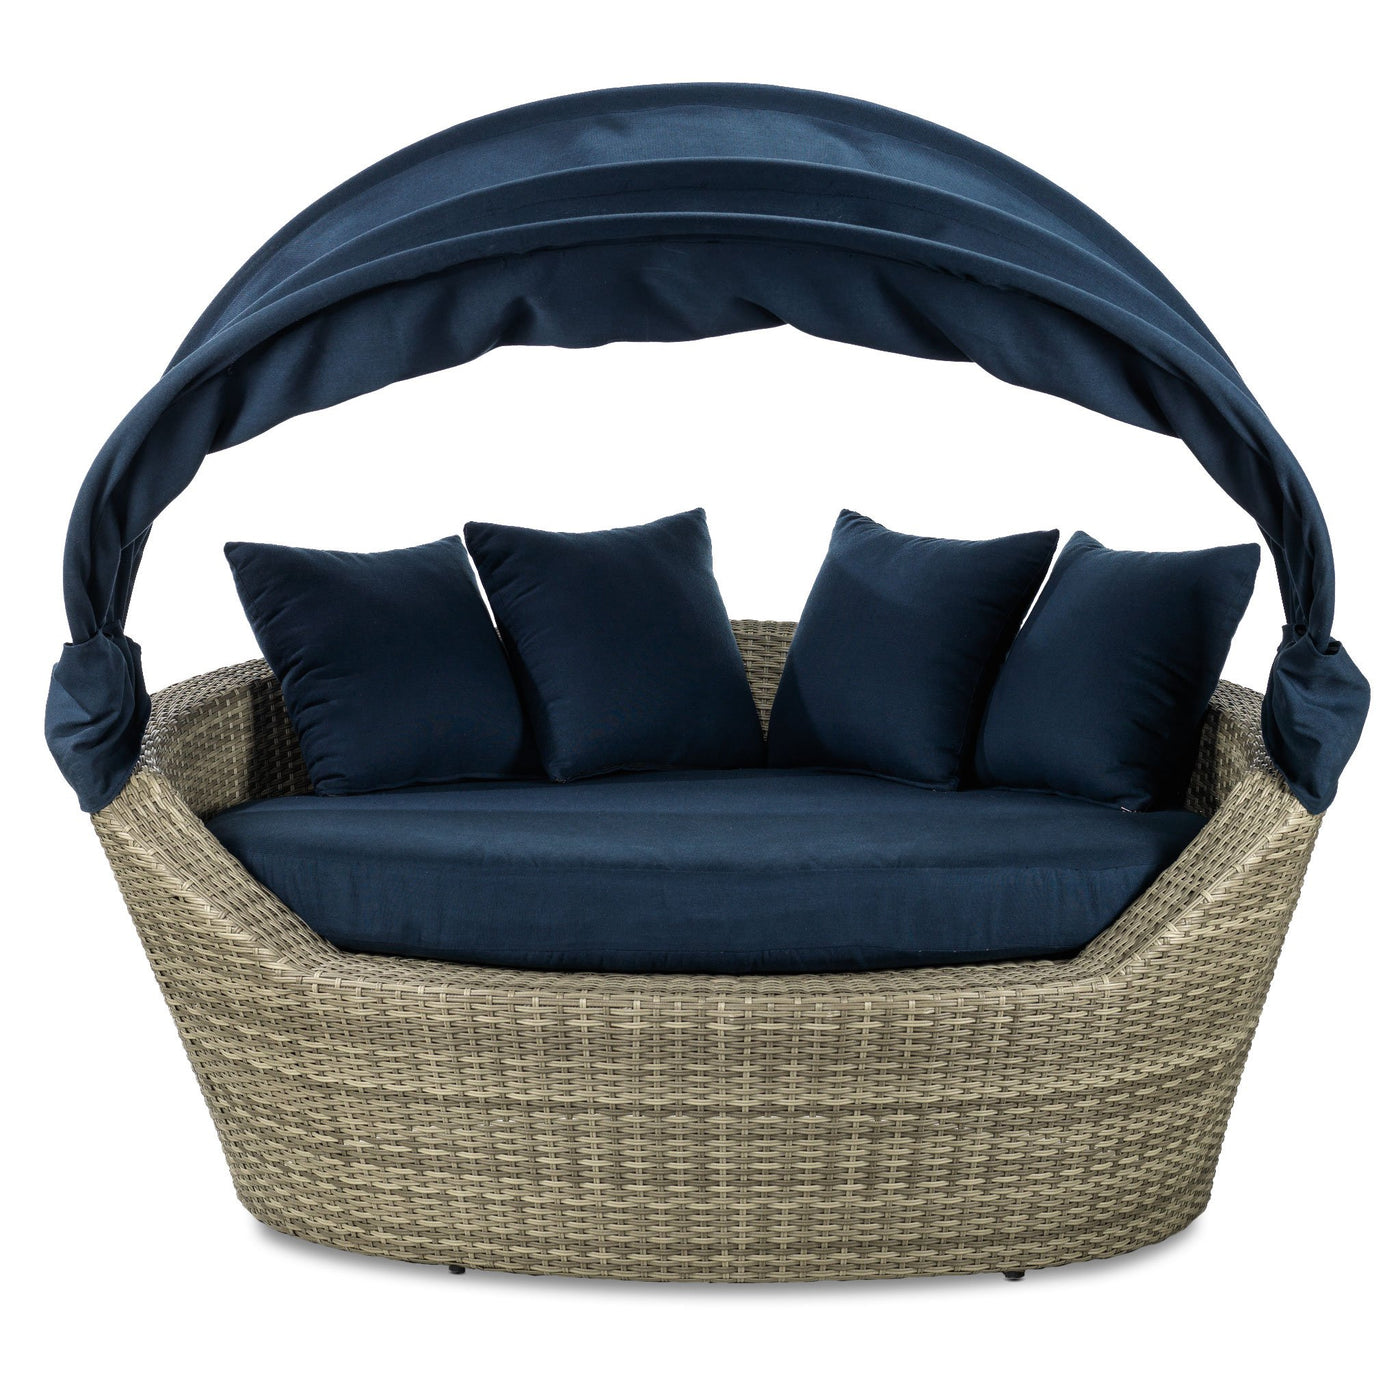 Jonathan patio daybed navy touch to zoom 1 2 3